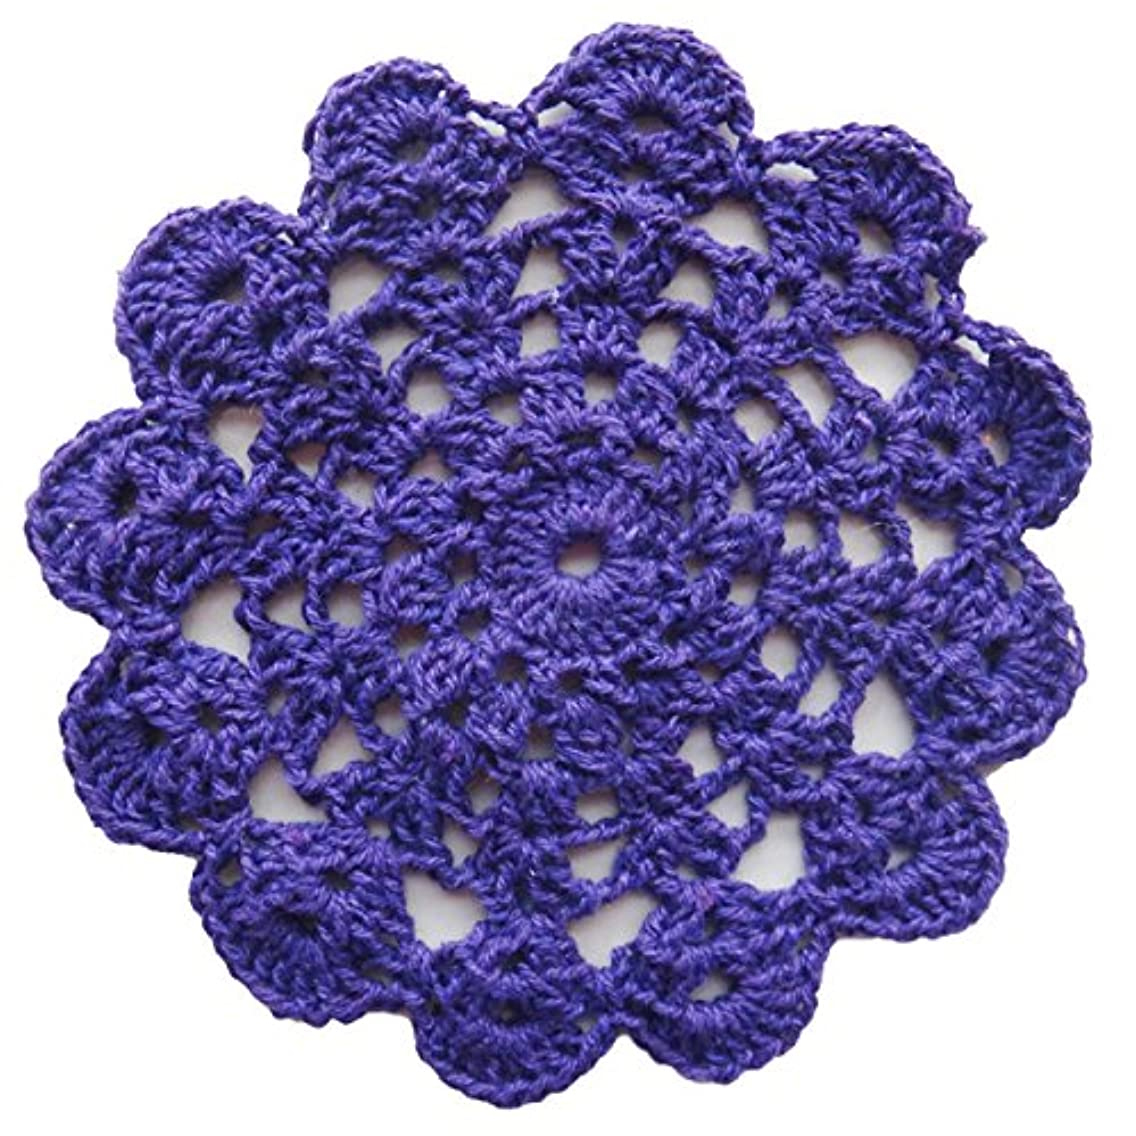 YoumeHome Linen Crochet Lace Placemats Doilies Handmade Cotton Round 6.3 inches(16 cm) (Pack of 6) (Dark Purple)